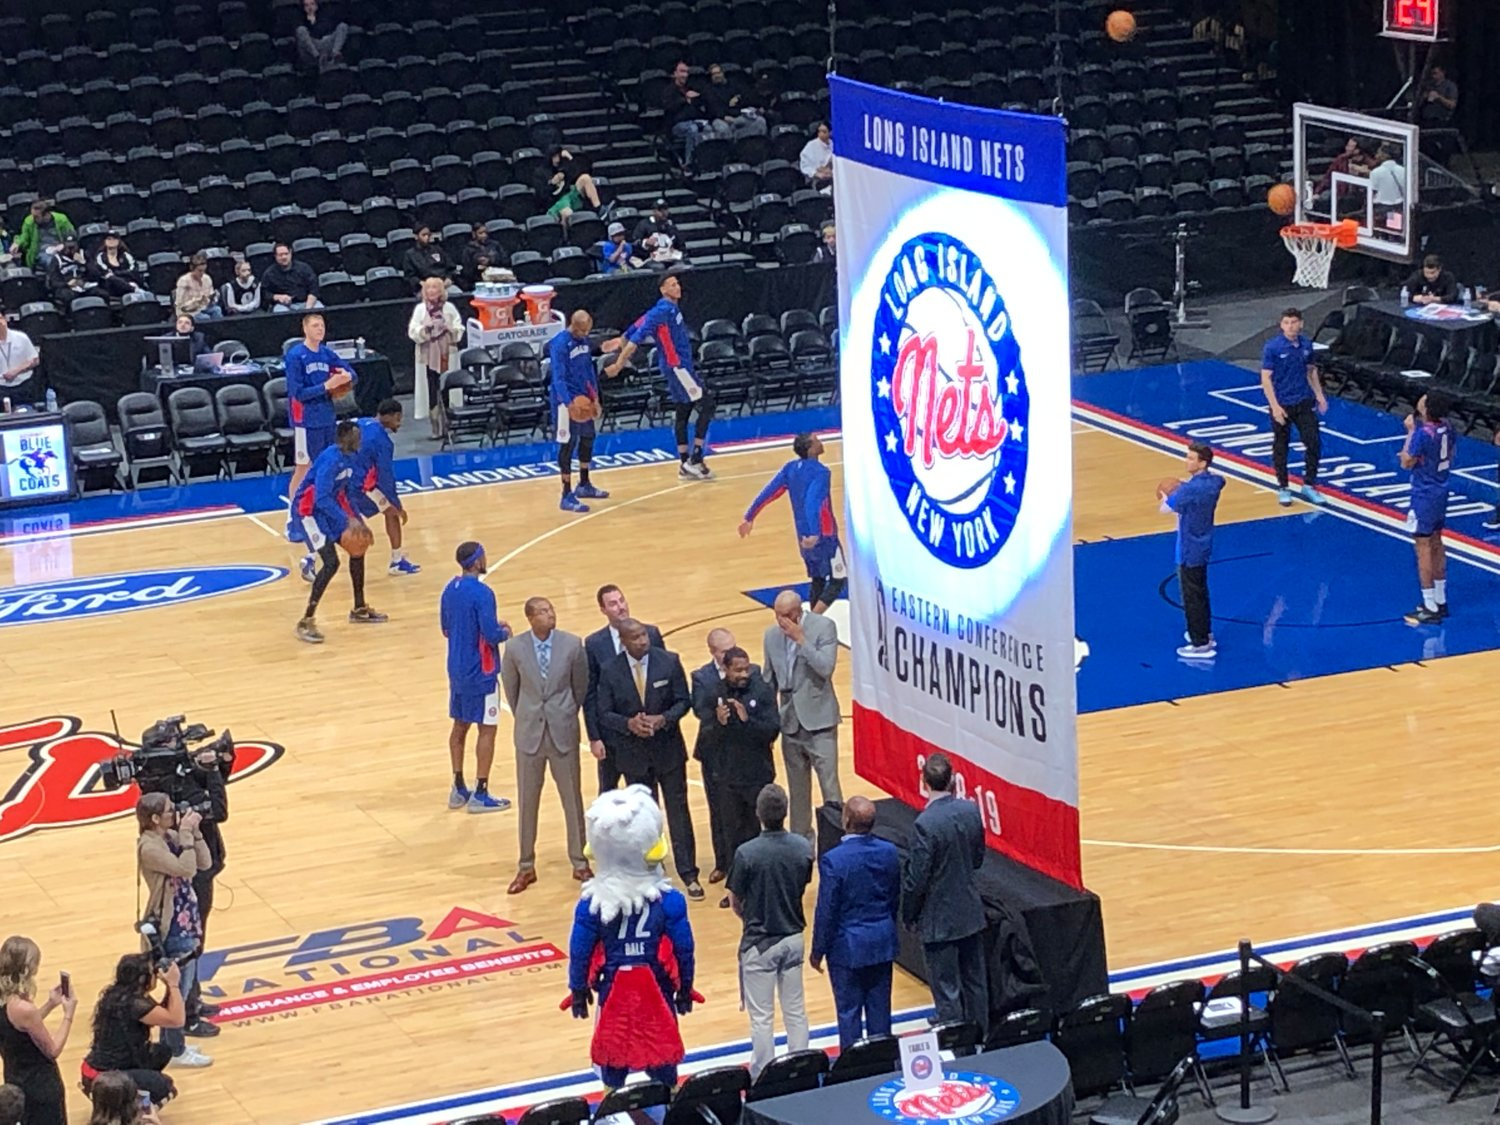 Long Island Nets coaches and management help raise the club's 2018-19 NBA G League Eastern Conference Championship banner Friday night before the team's home game against the Delaware Blue Coats at NYCB Live's Nassau Coliseum.